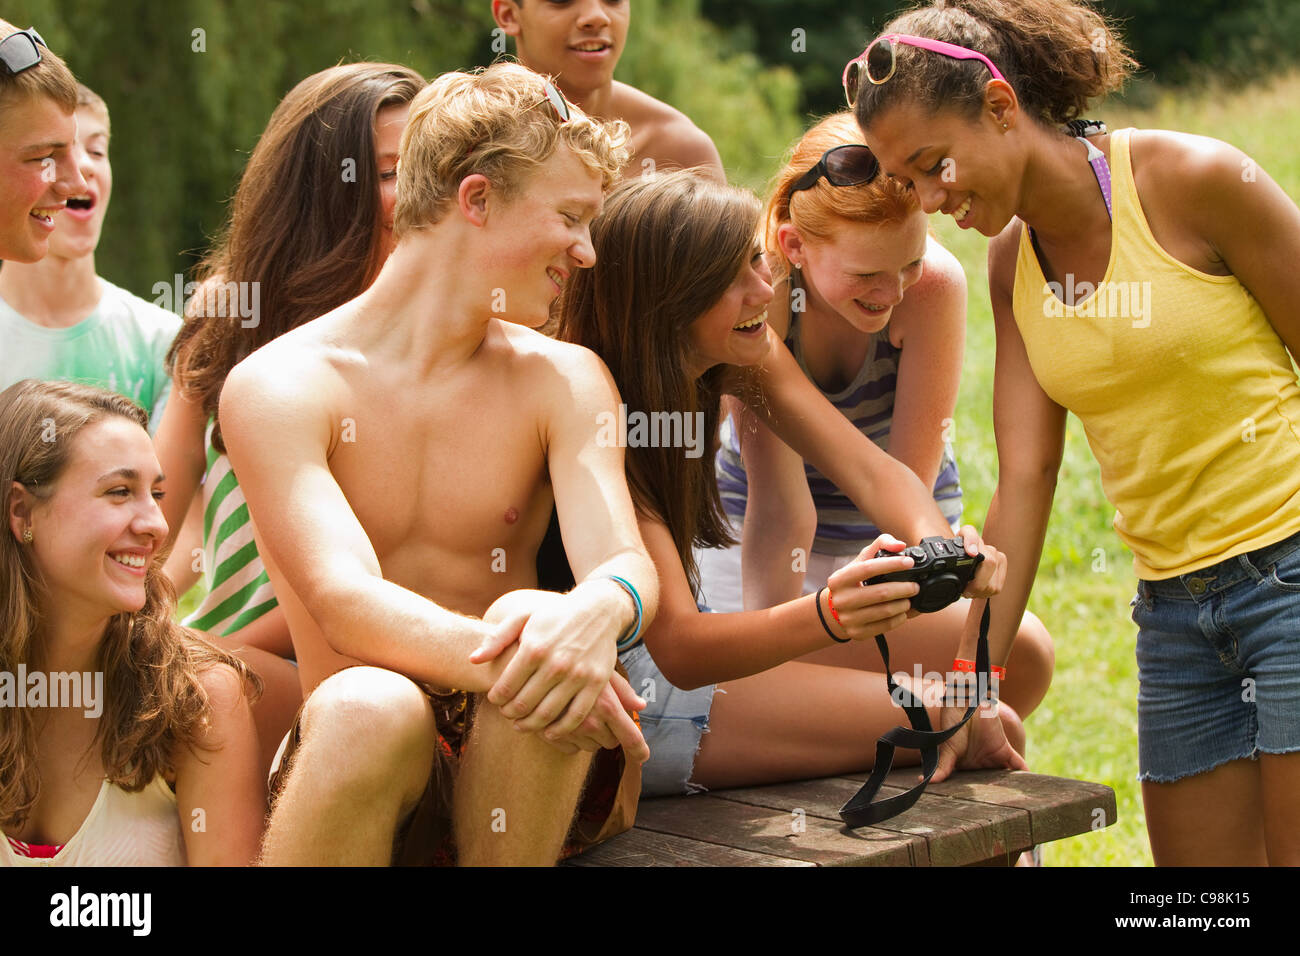 Teenagers reviewing photos together on friend's camera - Stock Image